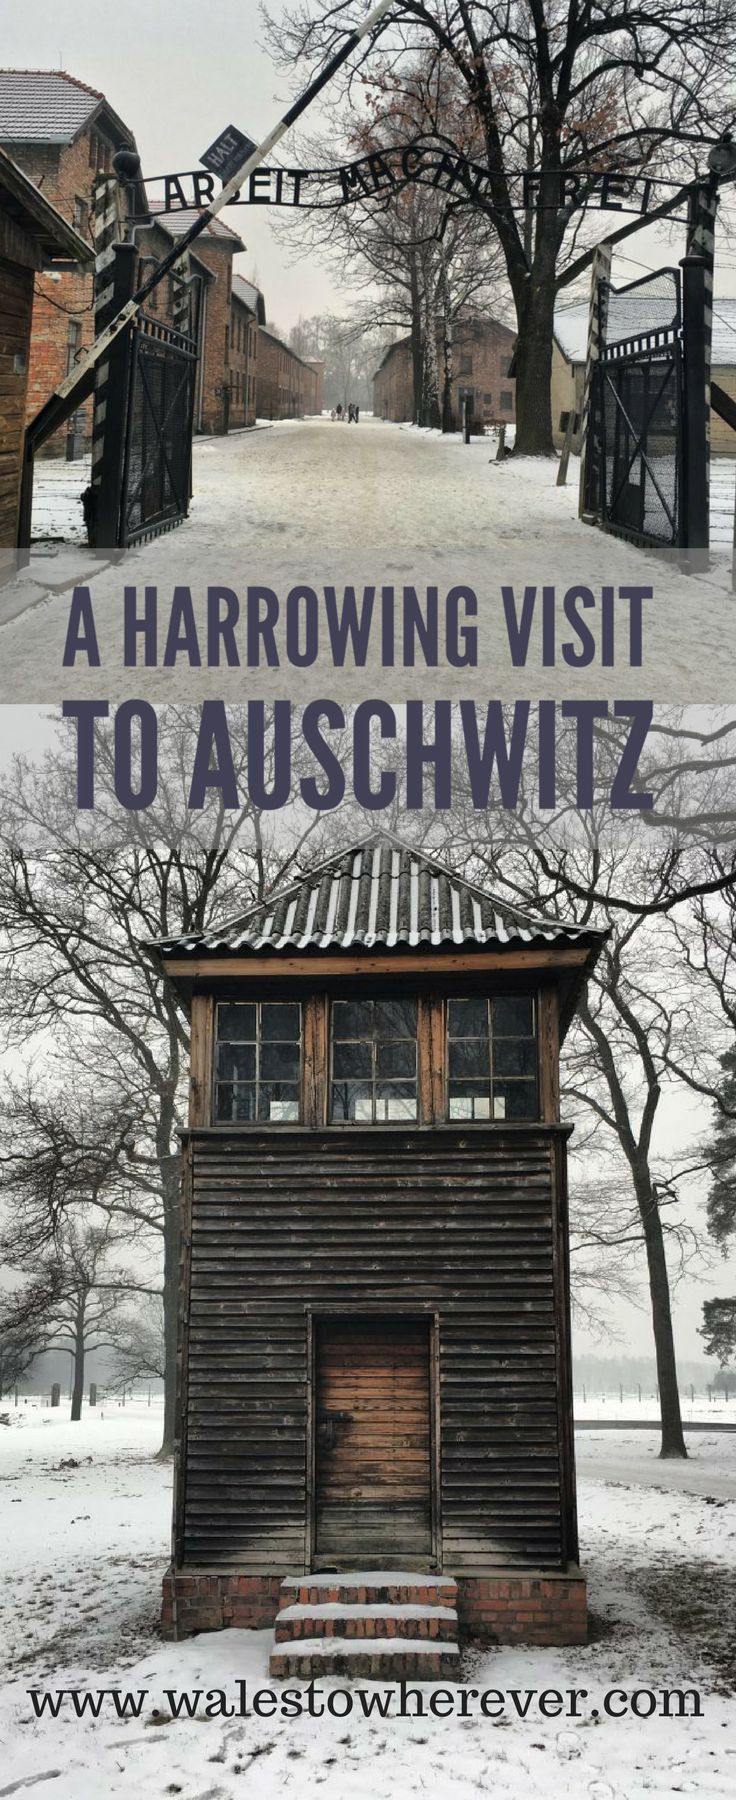 Auschwitz-Birkenau is a shock to the system. It's chilling, it's sombre but with such close proximity to Krakow, a visit is necessary in order to remember.